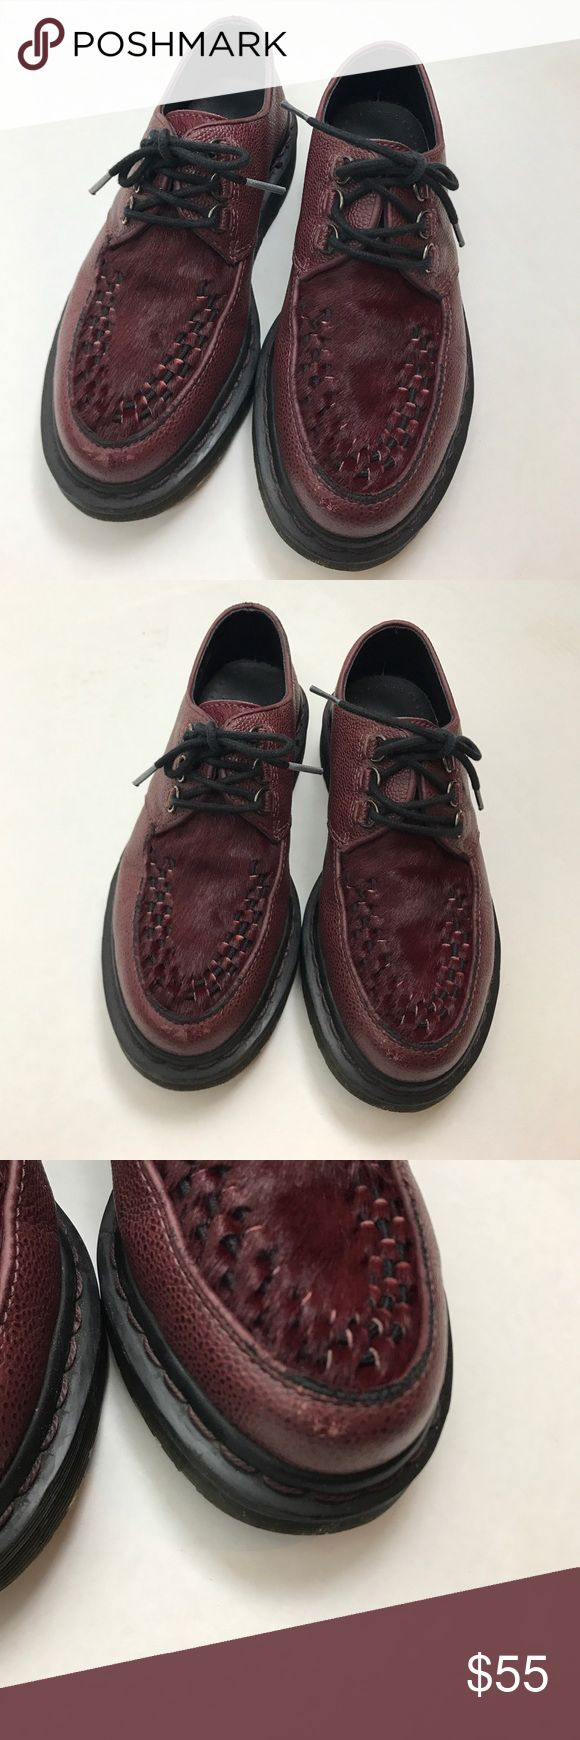 Rare Doc Dr Martens beck Oxblood creeper Awesome pair of Dr Martens d-ring lace up creepers. woven detail on the upper for a unique look. D.C. Scotchgrain +italian hair on toe. Men's size 5, women's size 6. Wear on toes of both shoes as well as around heel of right shoe. Shown in photos. Very clean! Dr Martens Shoes Boots